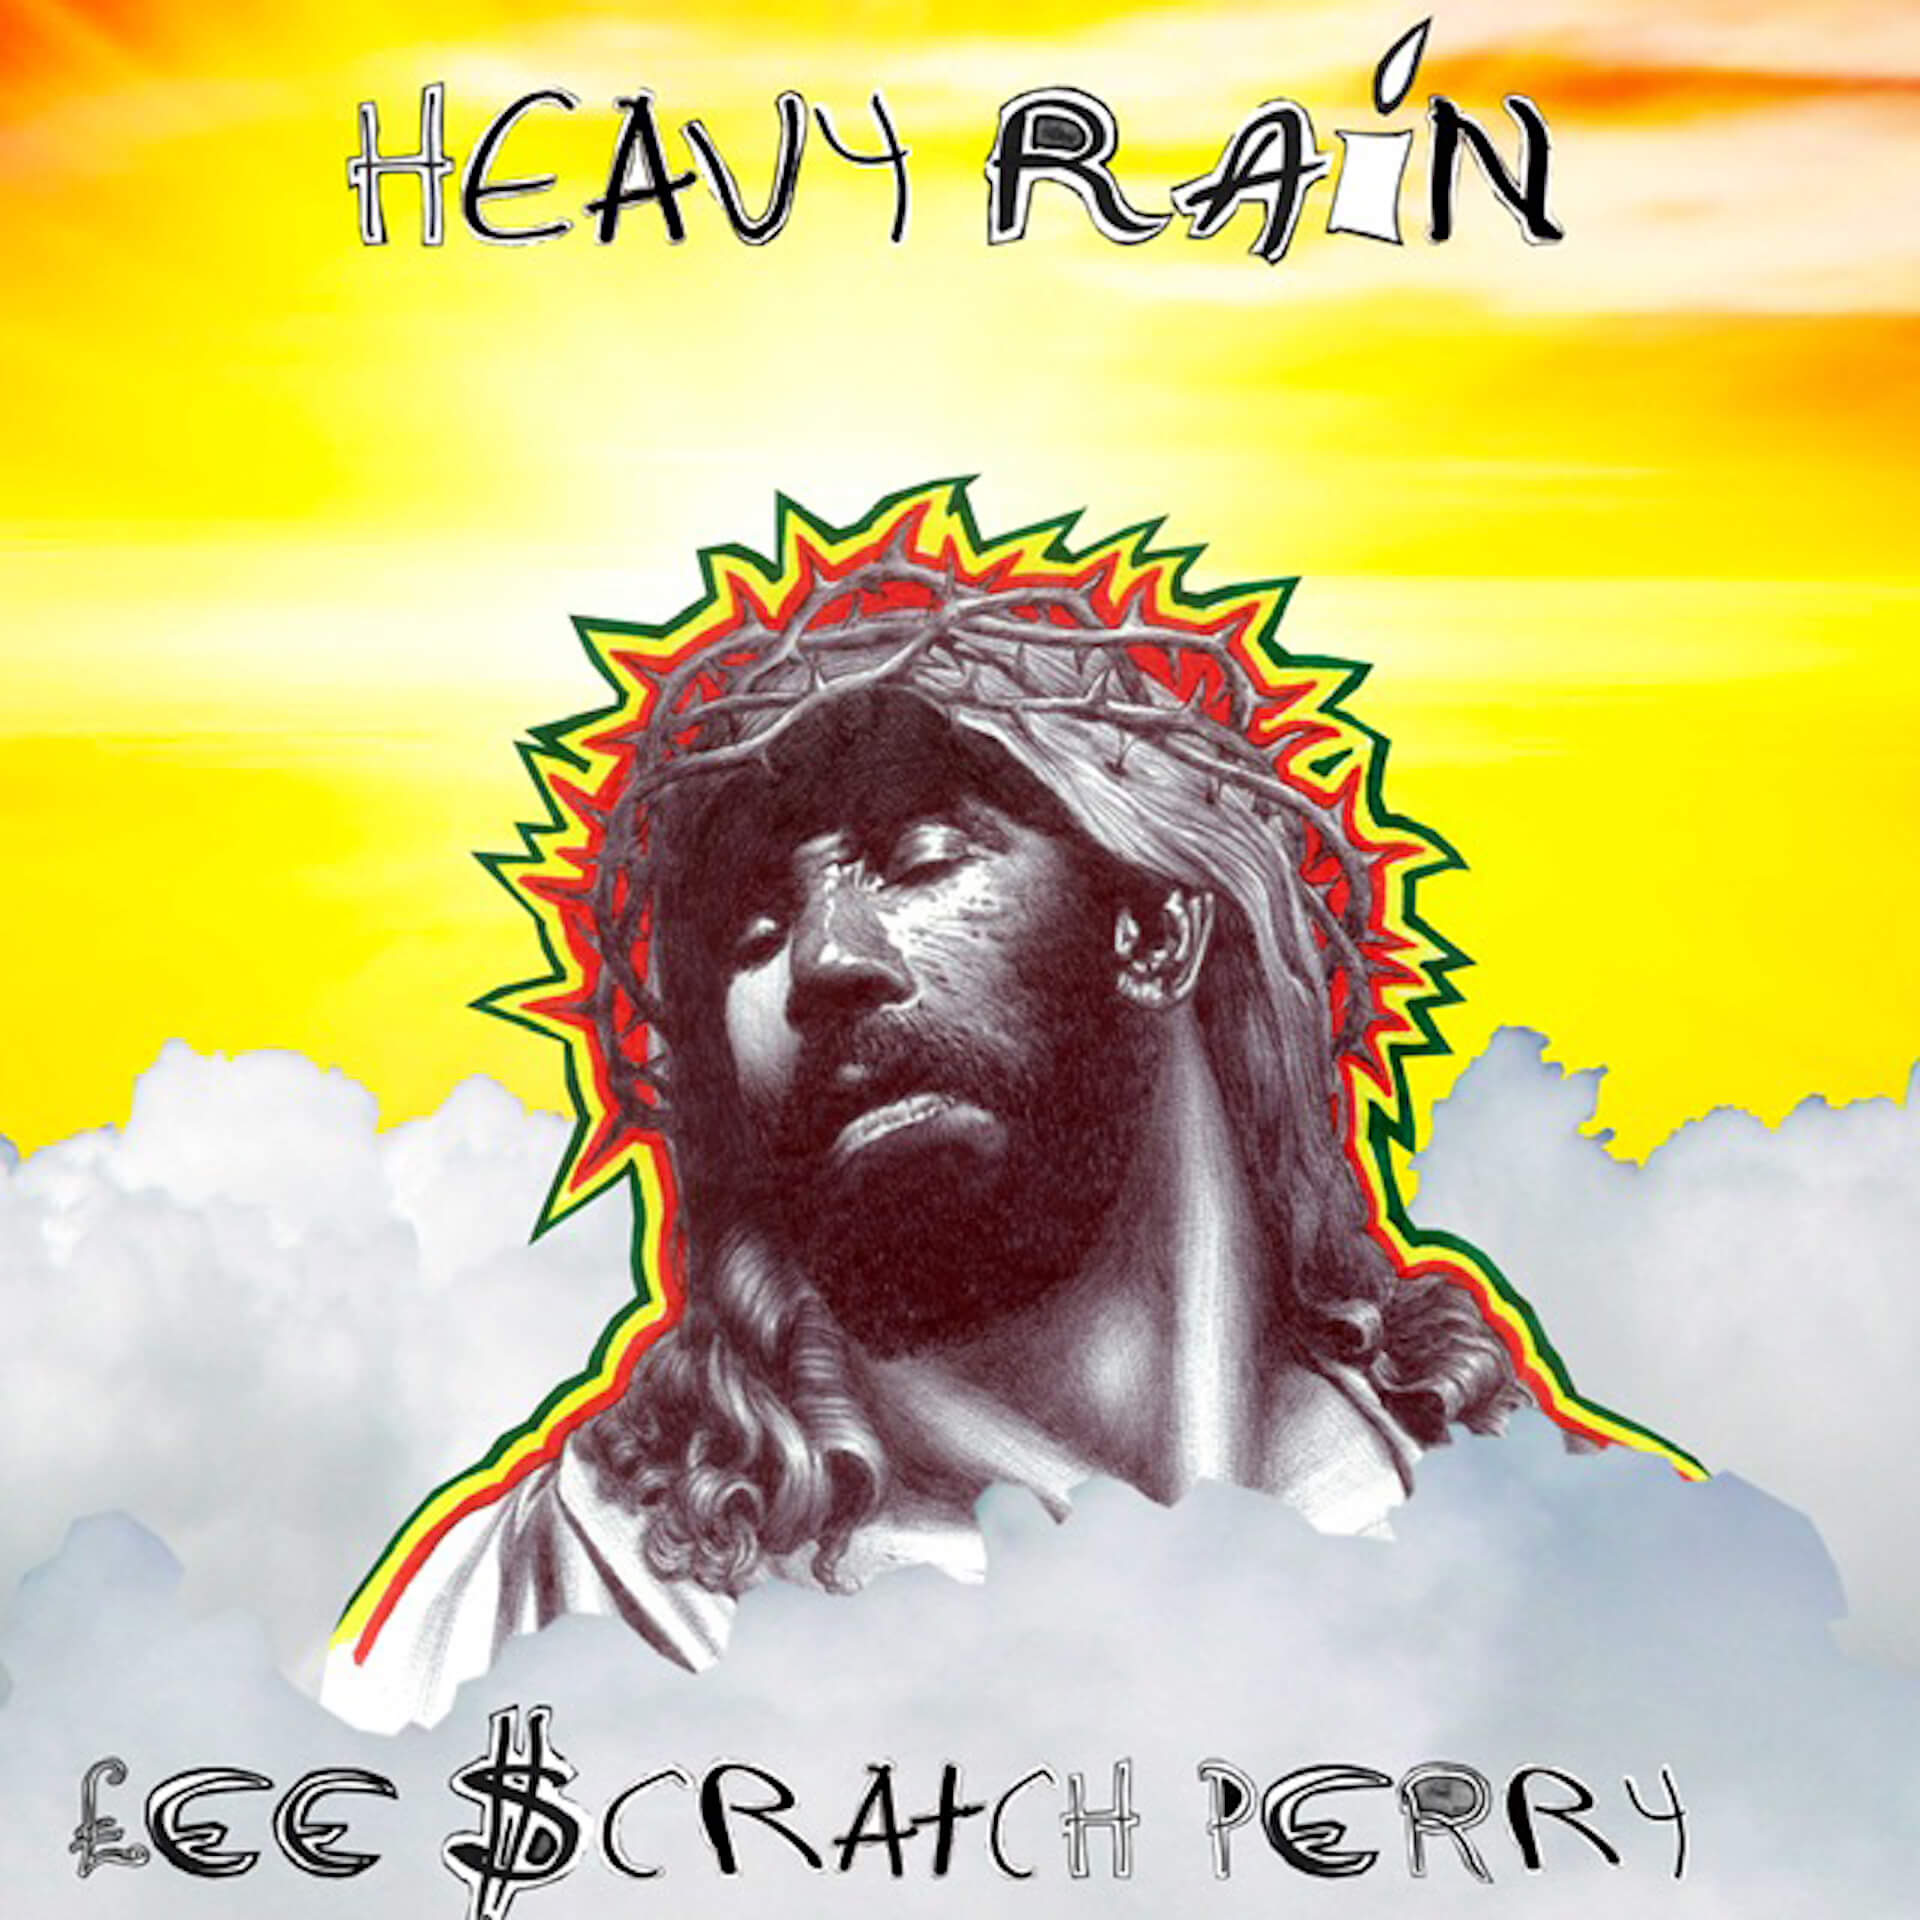 """Lee """"Scratch"""" Perry x Brain Eno x Adrian Sherwood、3人のコラボ作となる新曲「Here Come The Warm Dreads」のMVが解禁 music_191219_leescratchperry2"""